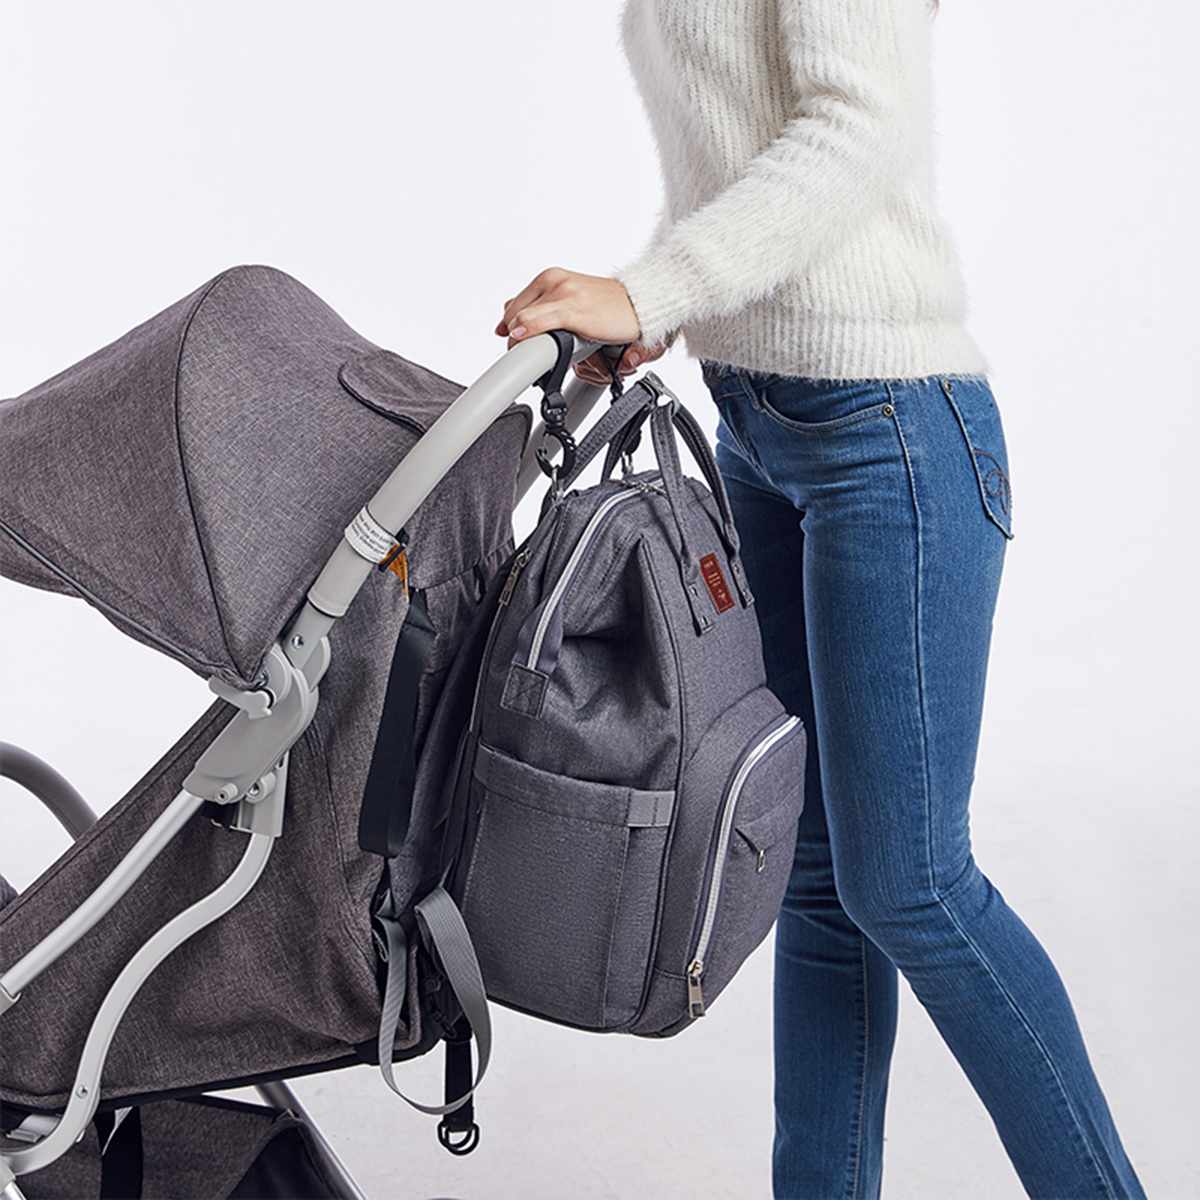 Multifunction Baby Bag Widened Shoulder Strap Large Capacity Maternity Bags Waterproof Travel Women Fashion Diaper Bag Backpack